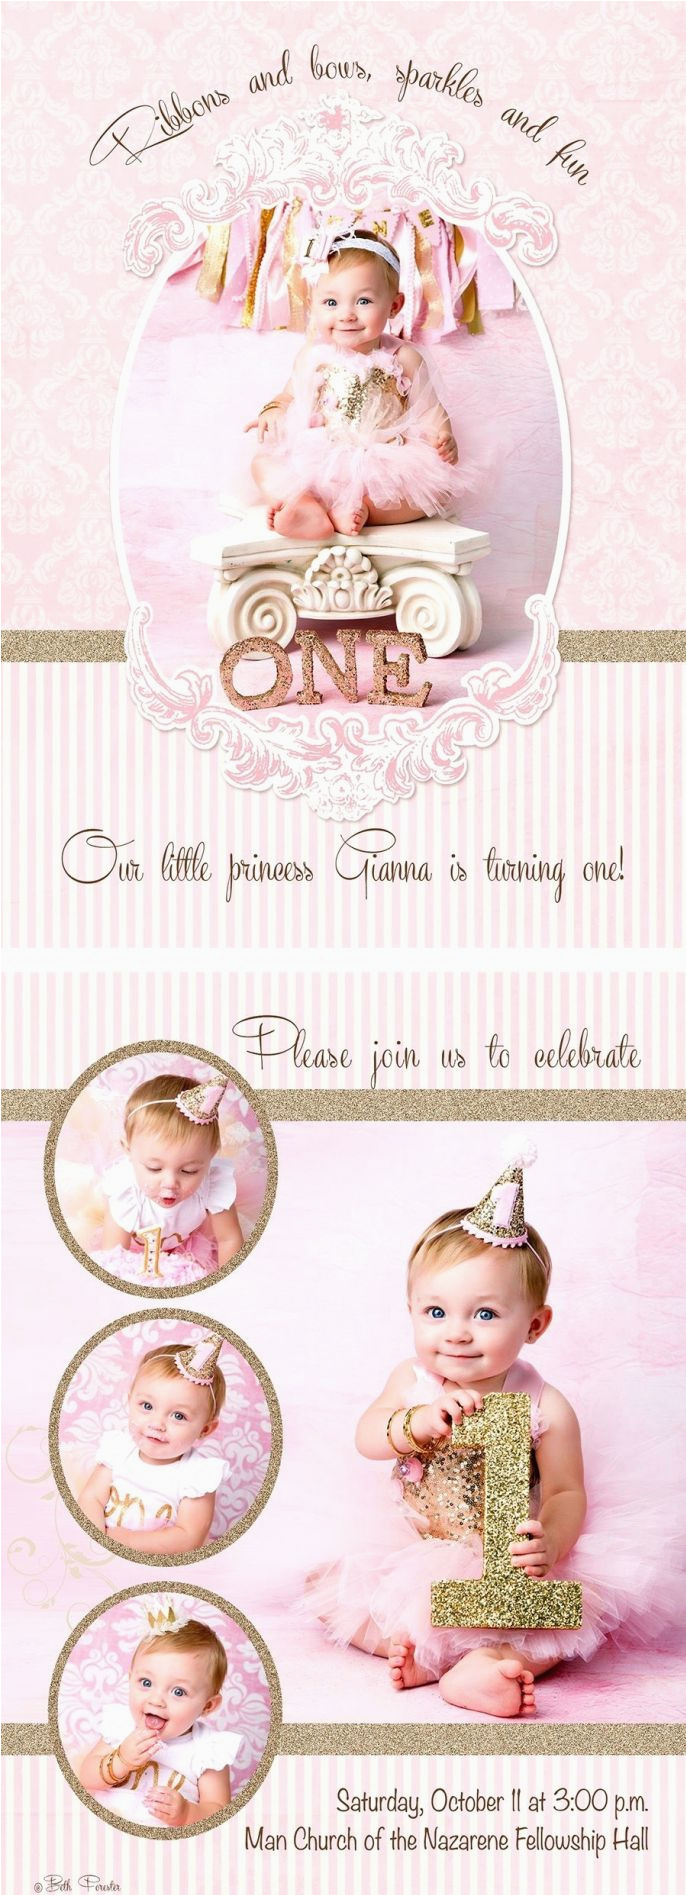 free online 1st birthday invitation card maker pertaining to house